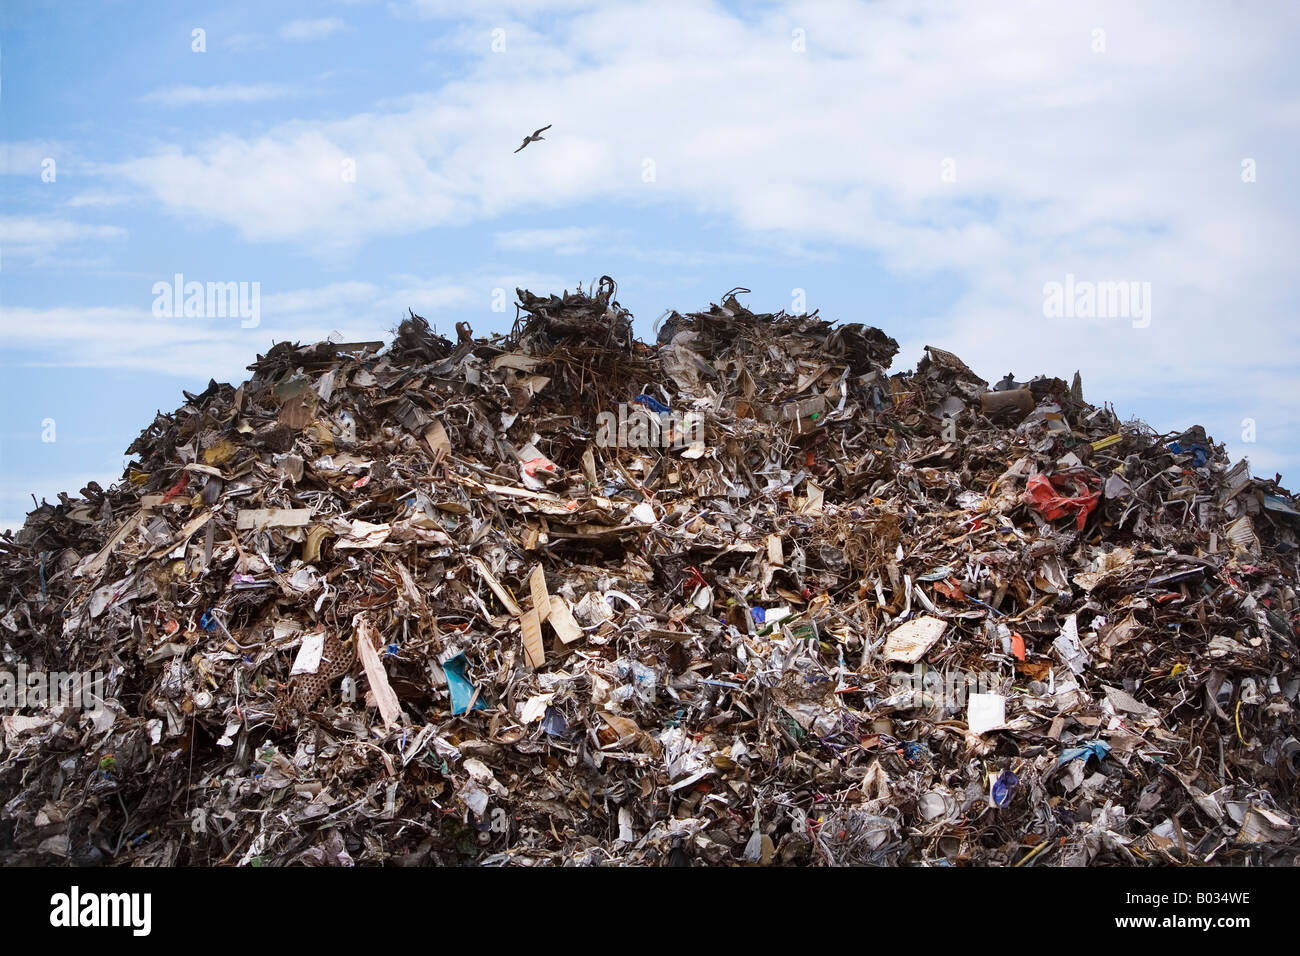 A seagull flies over a mountain of scrap. - Stock Image